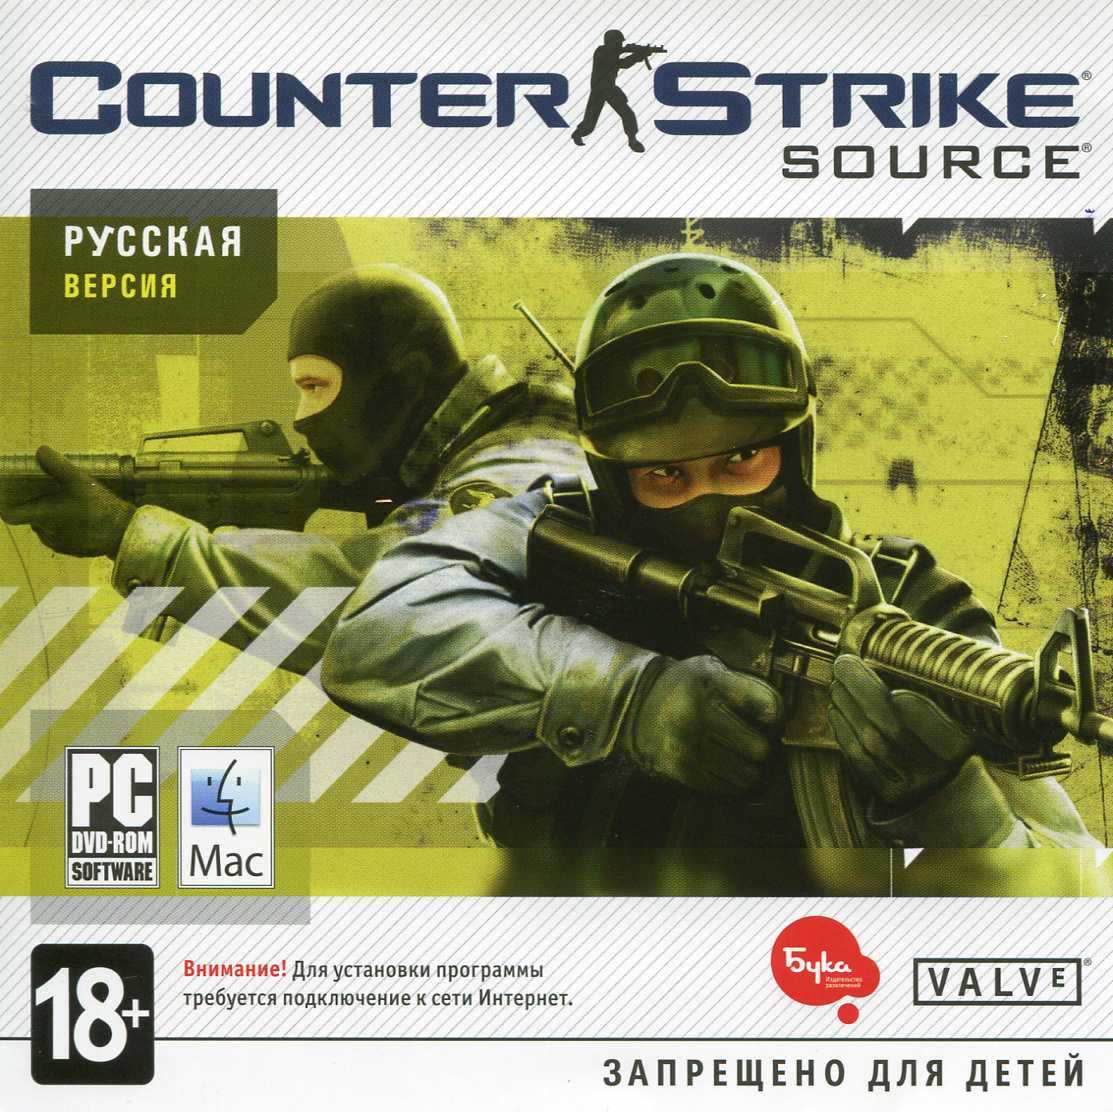 Скачать Counter-strike:source v84 No-Steam (Торрент)